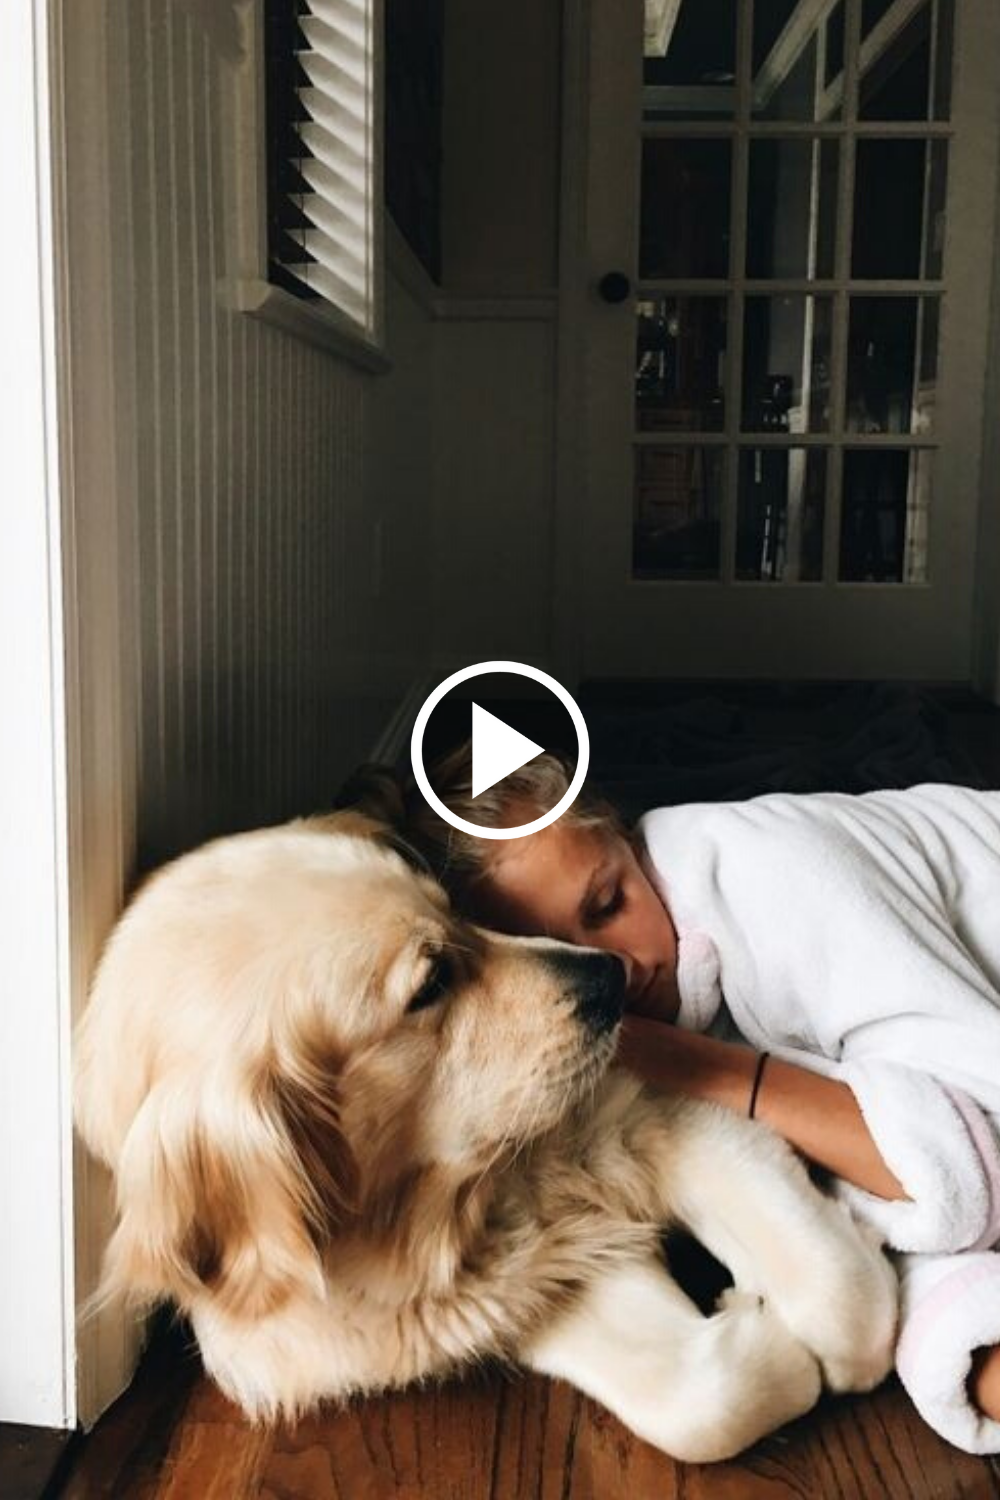 Adorable Babies Playing With Dogs And Cats Funny Babies Compilation Tiktok Youtube Video Instagram Dog Cat Cute F In 2020 White Cat Breeds Dog Cat Cute Animals